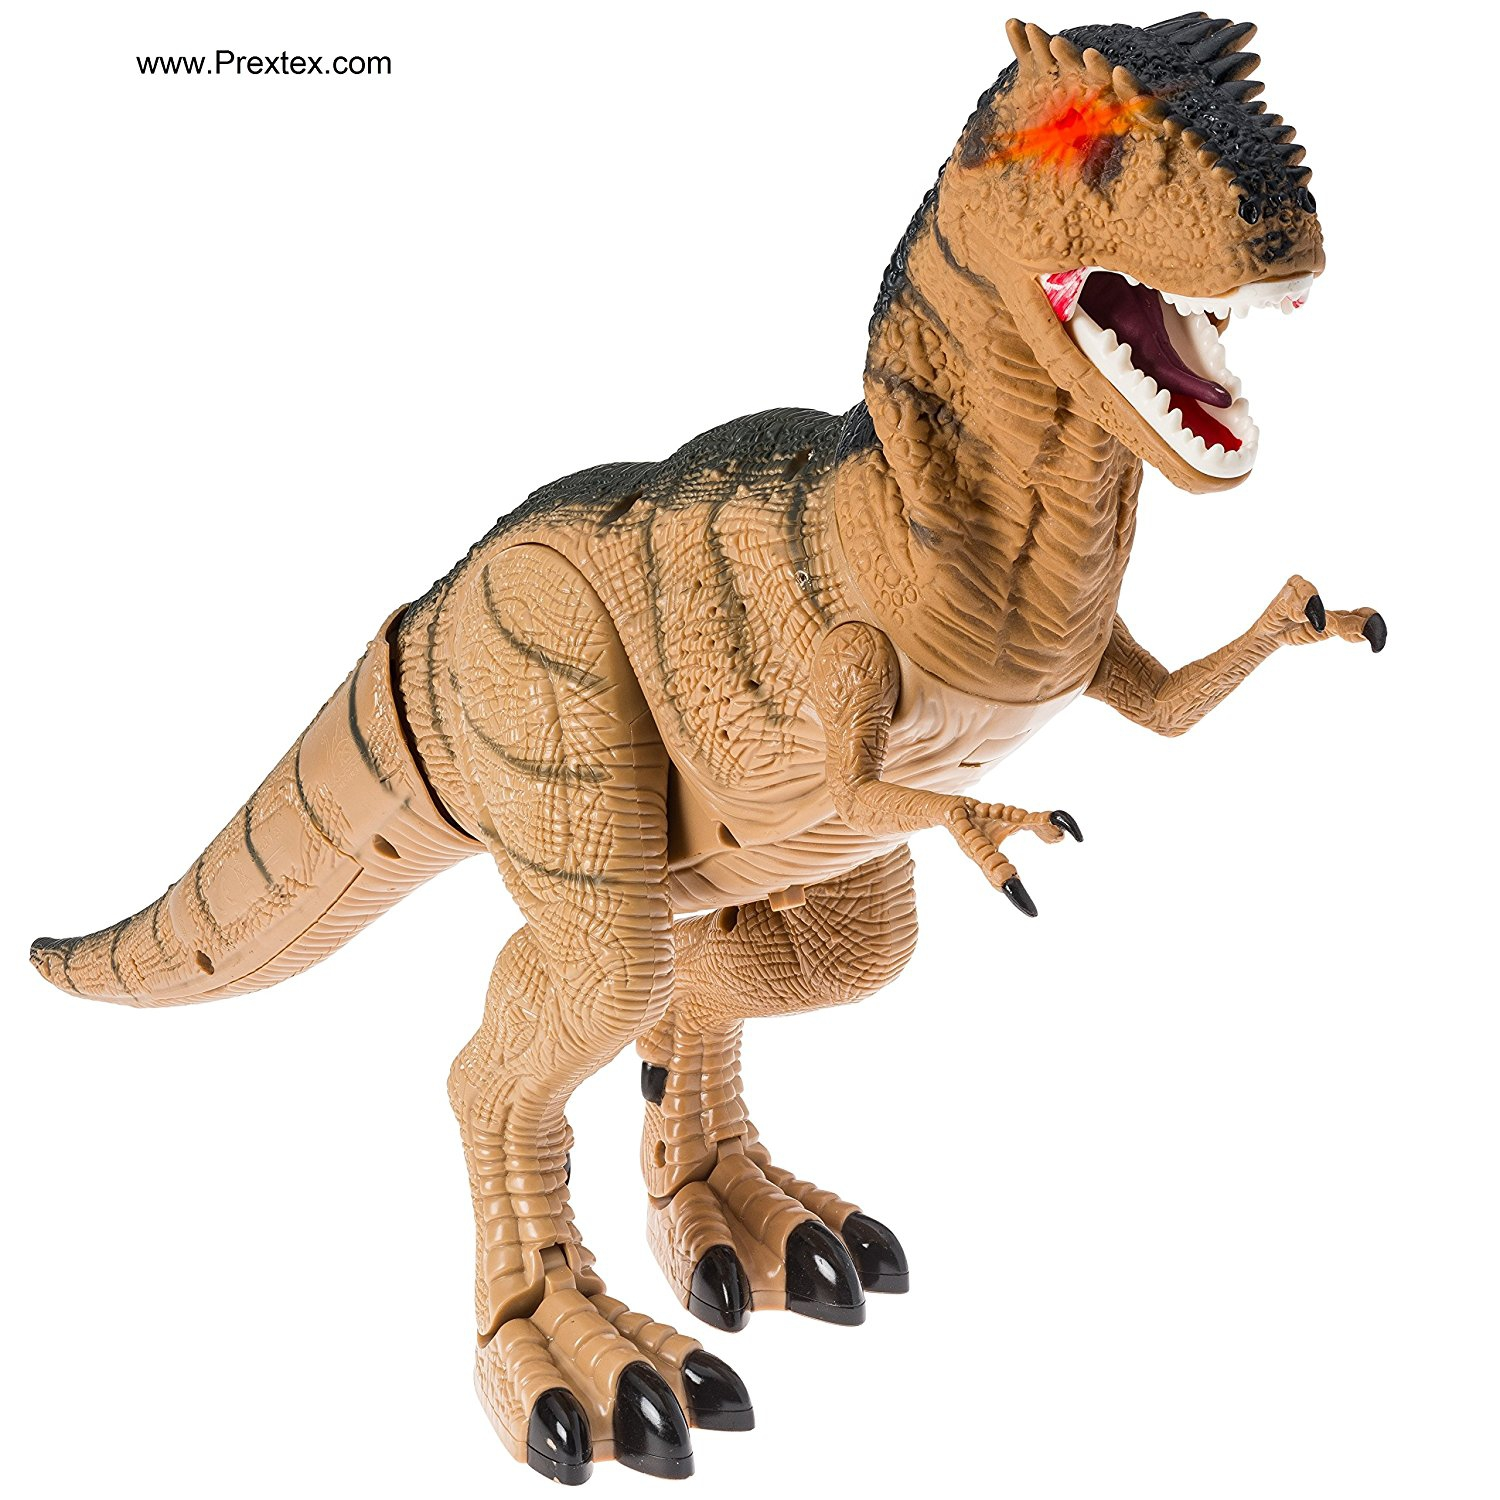 Prextex Battery Powered Walking Dinosaur Toy That Roars And Shakes While Eyes Are Blinking by